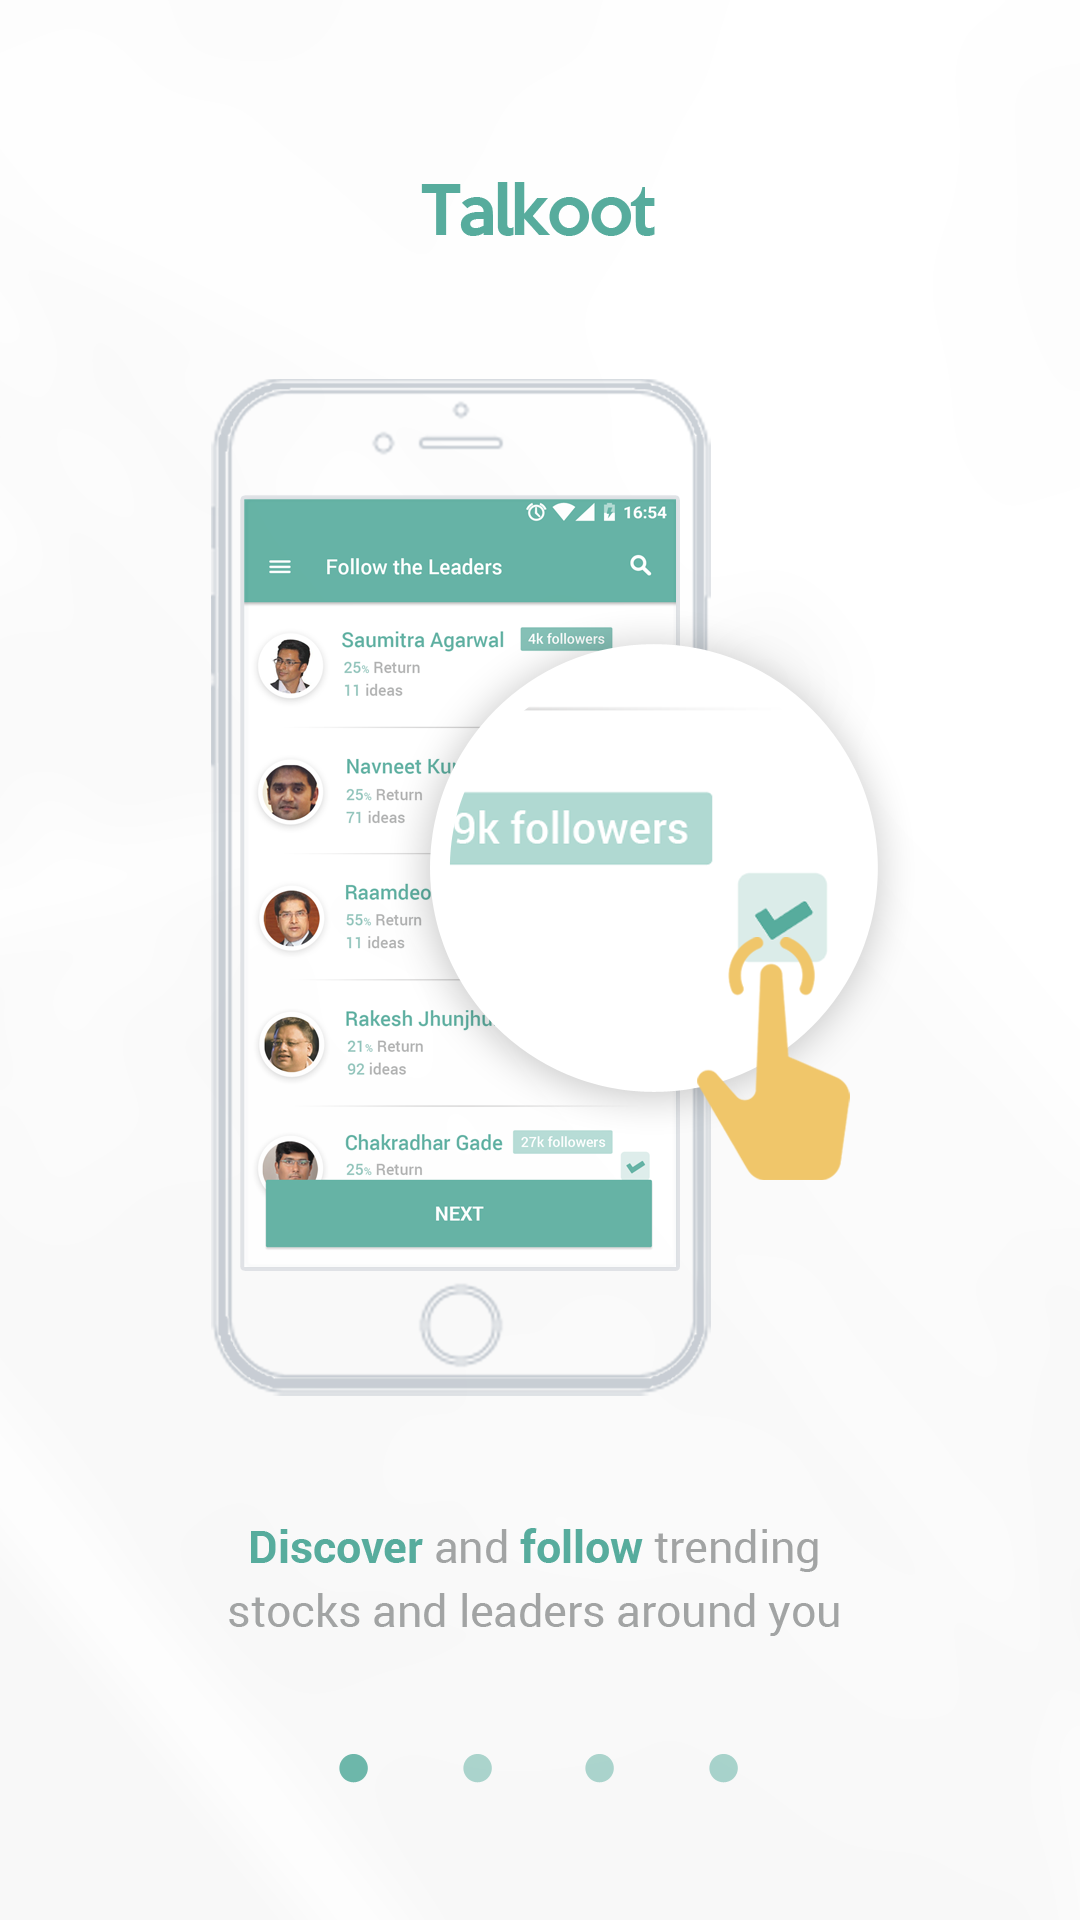 Design Android app for social network for stock traders and investors